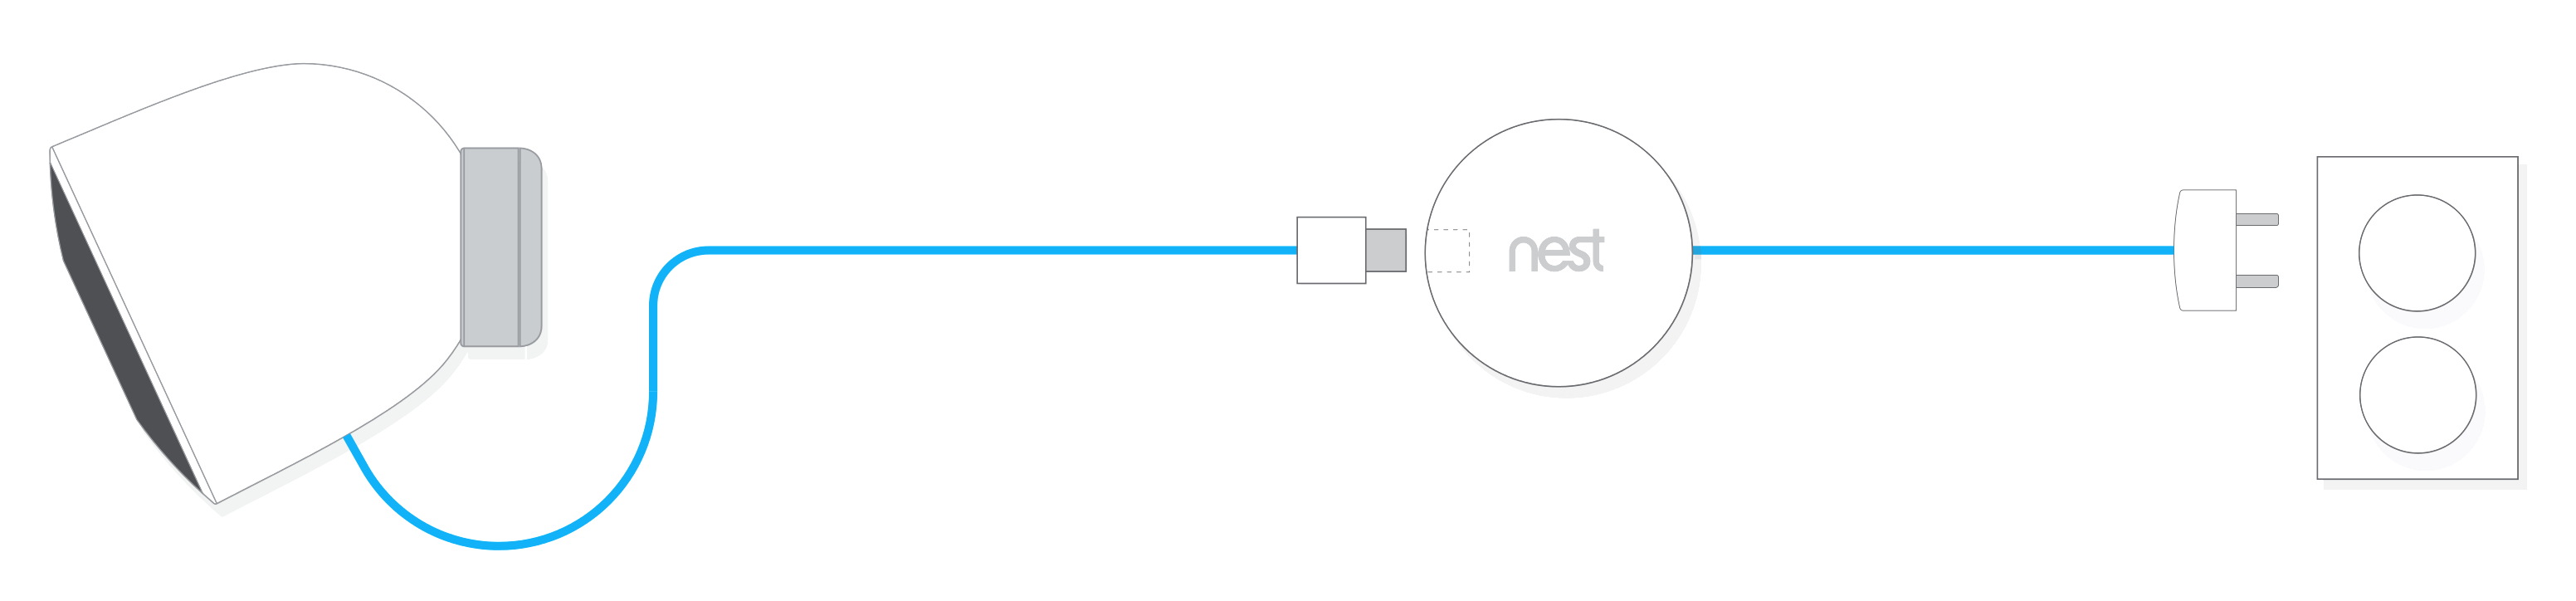 How To Install Your Outdoor Nest Cam - Nest Wiring Diagram Blue Wire